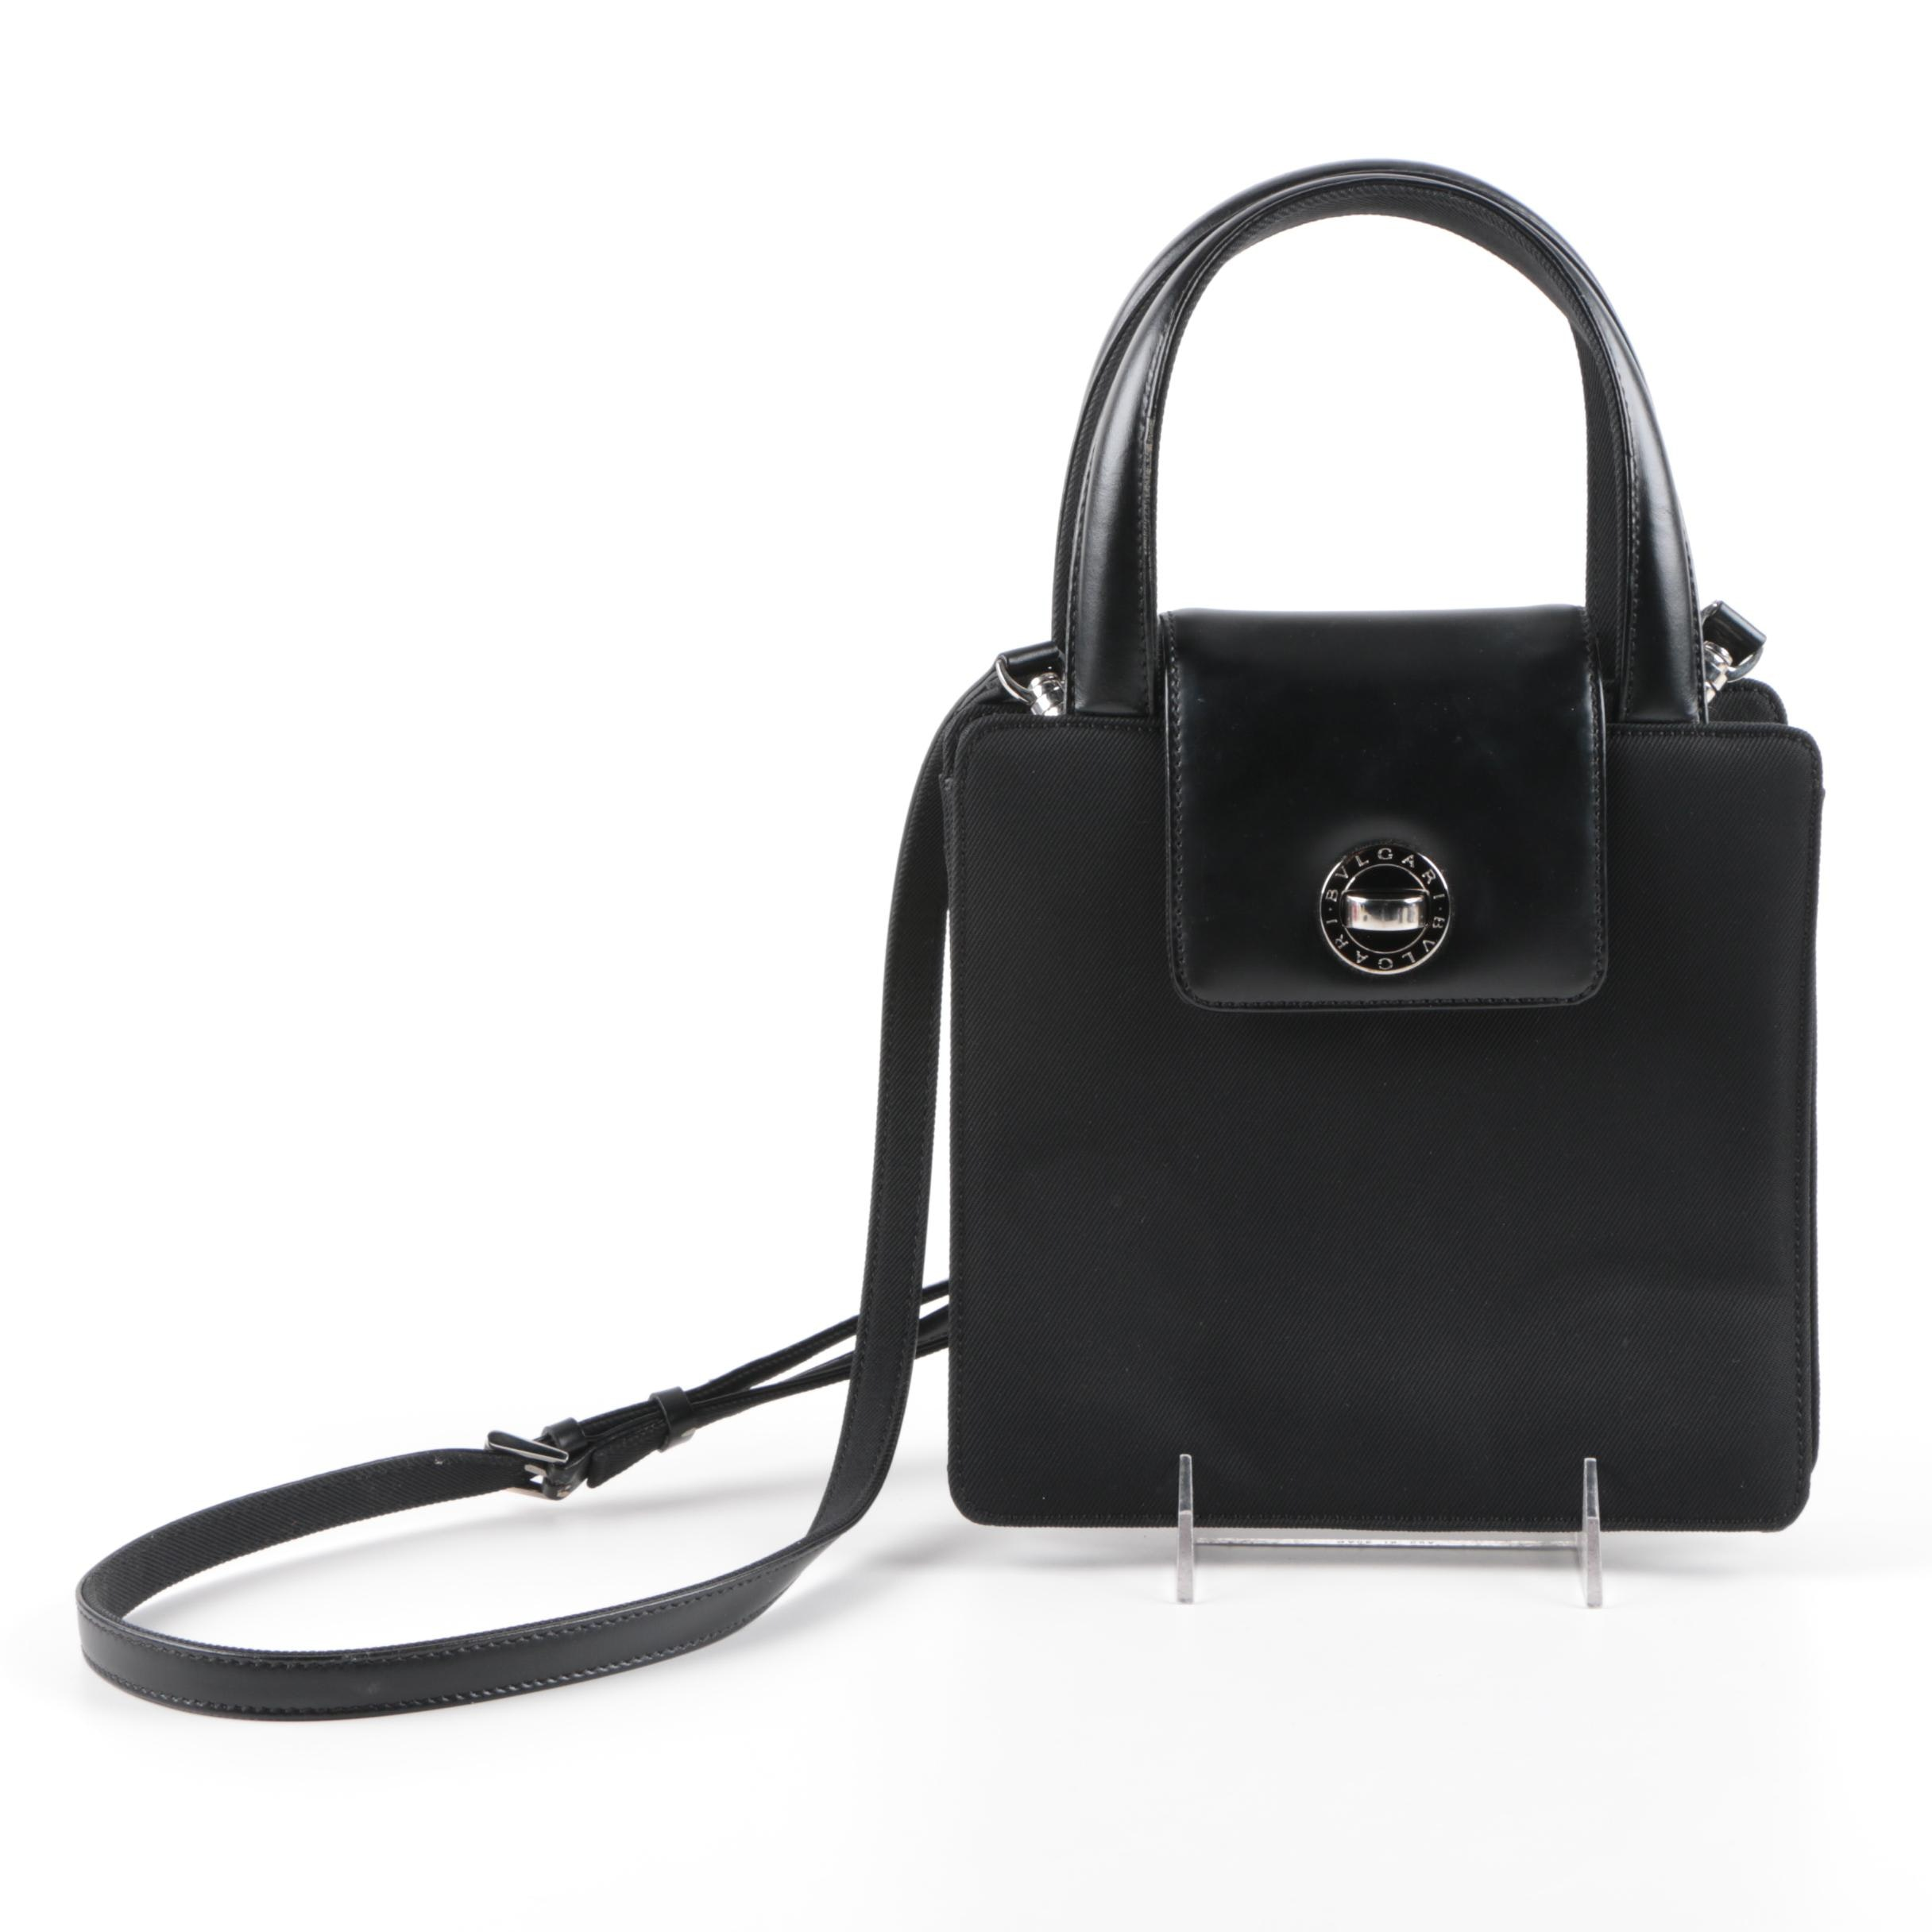 Bulgari Black Grosgrain and Leather Handbag